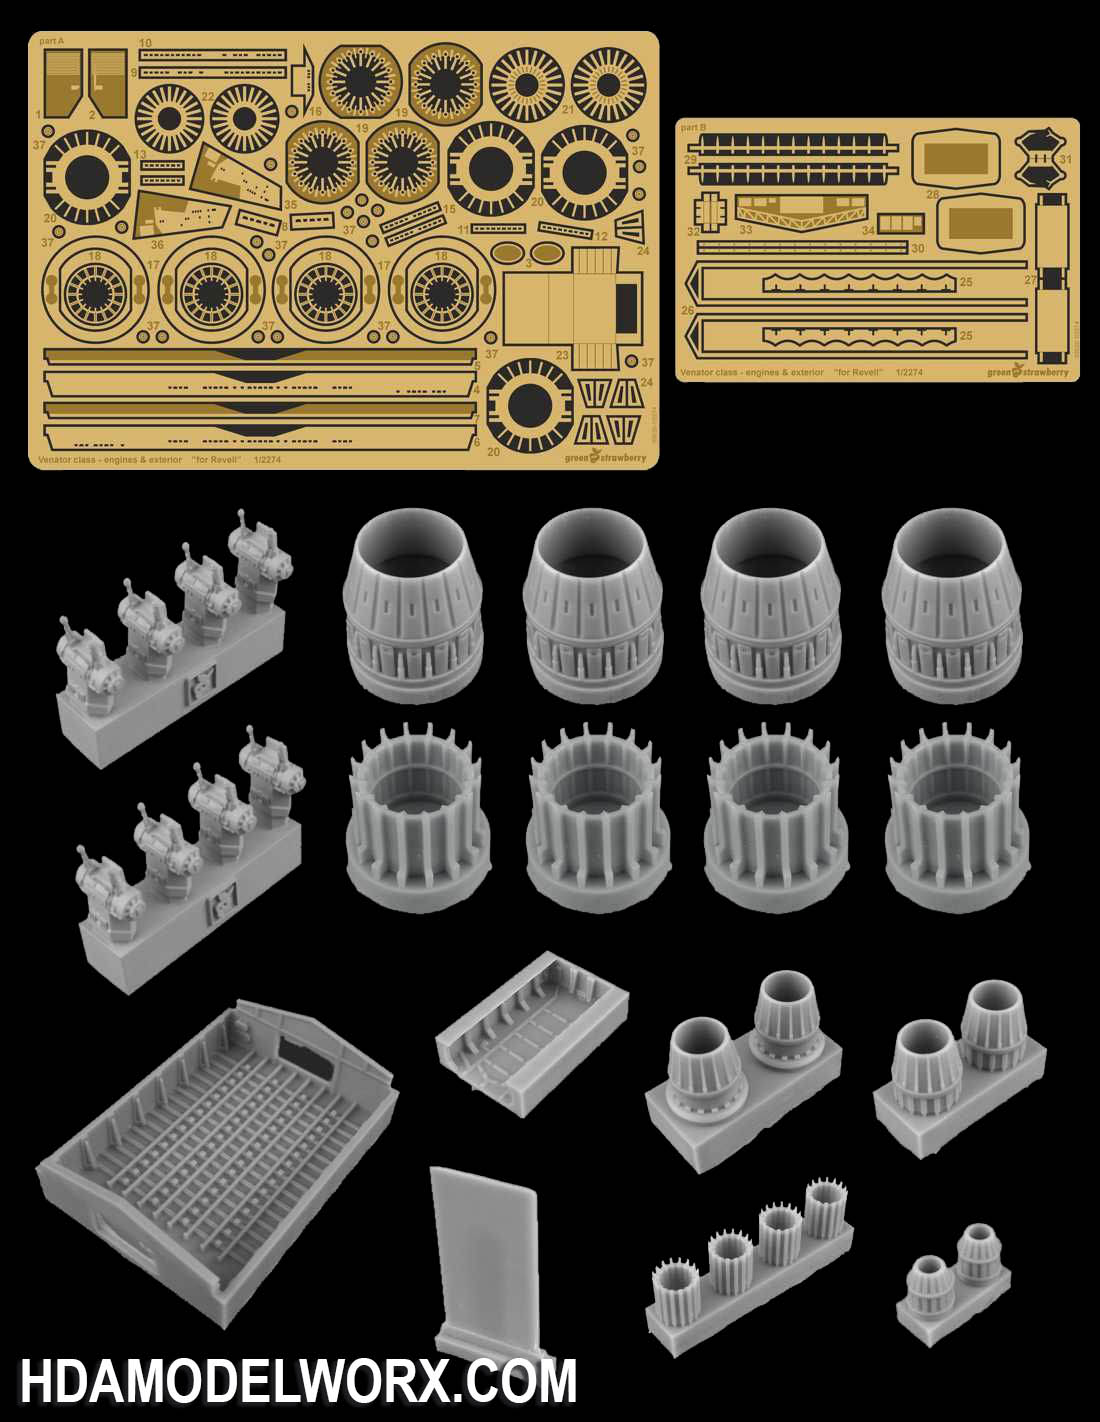 VENATOR CLASS STAR DESTROYER ENGINES & EXTERIOR RESIN AND PHOTOETCH DETAIL SET for the Revell 1/2274 Scale Model Kit by GREEN STRAWBERRY